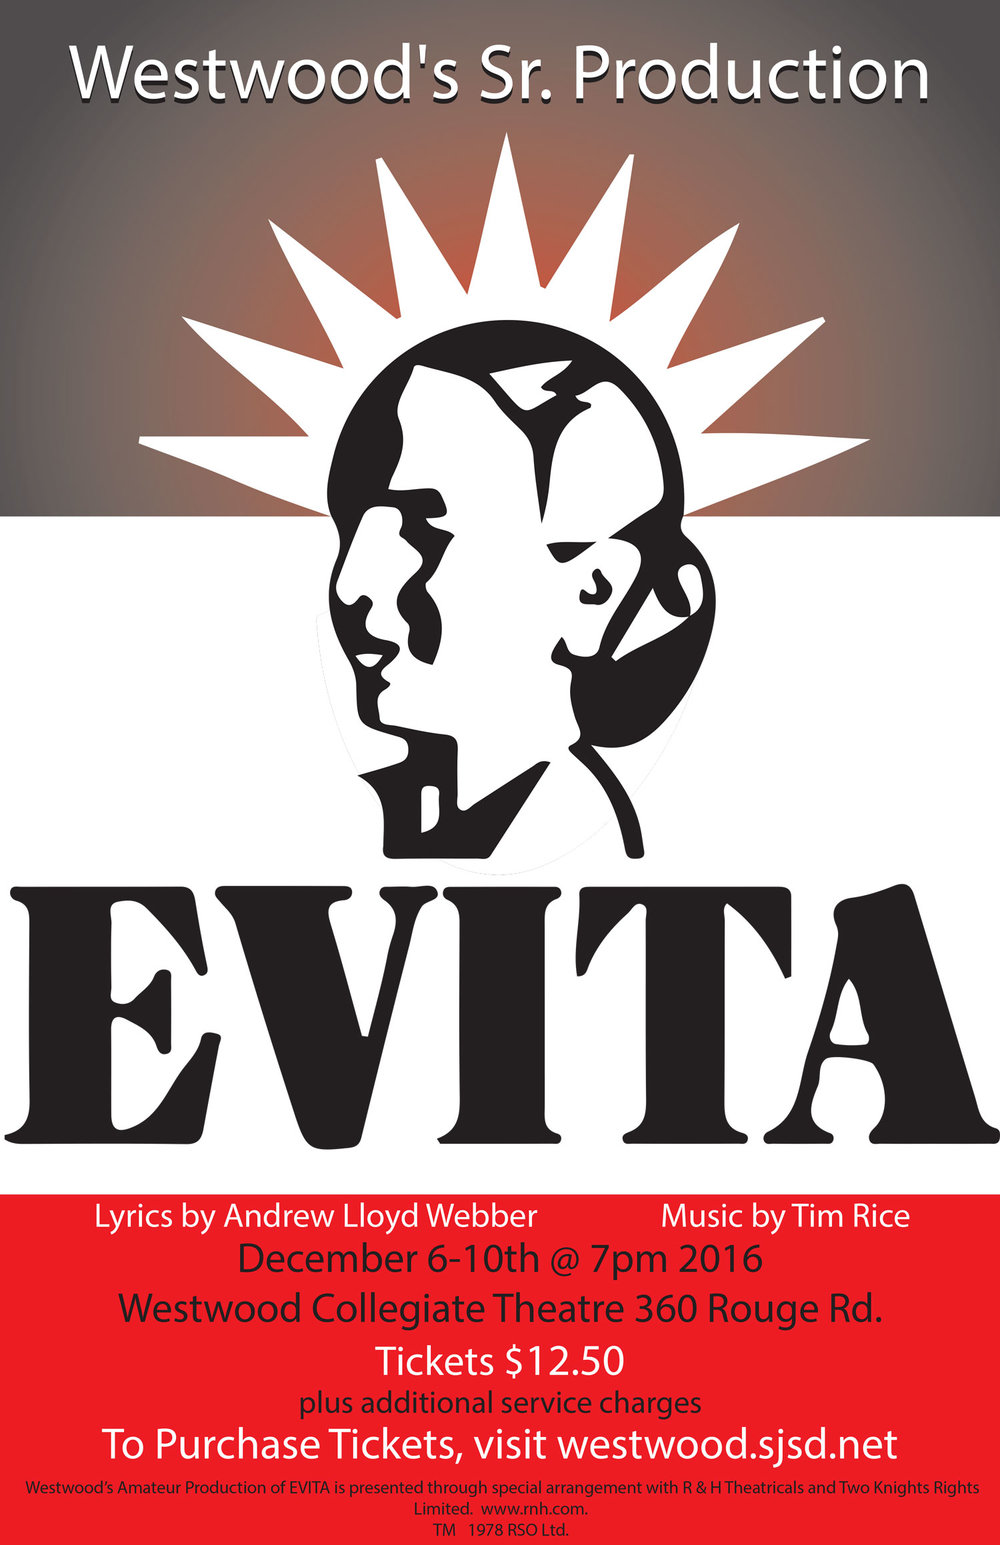 Westwood Collegiate production of Evita